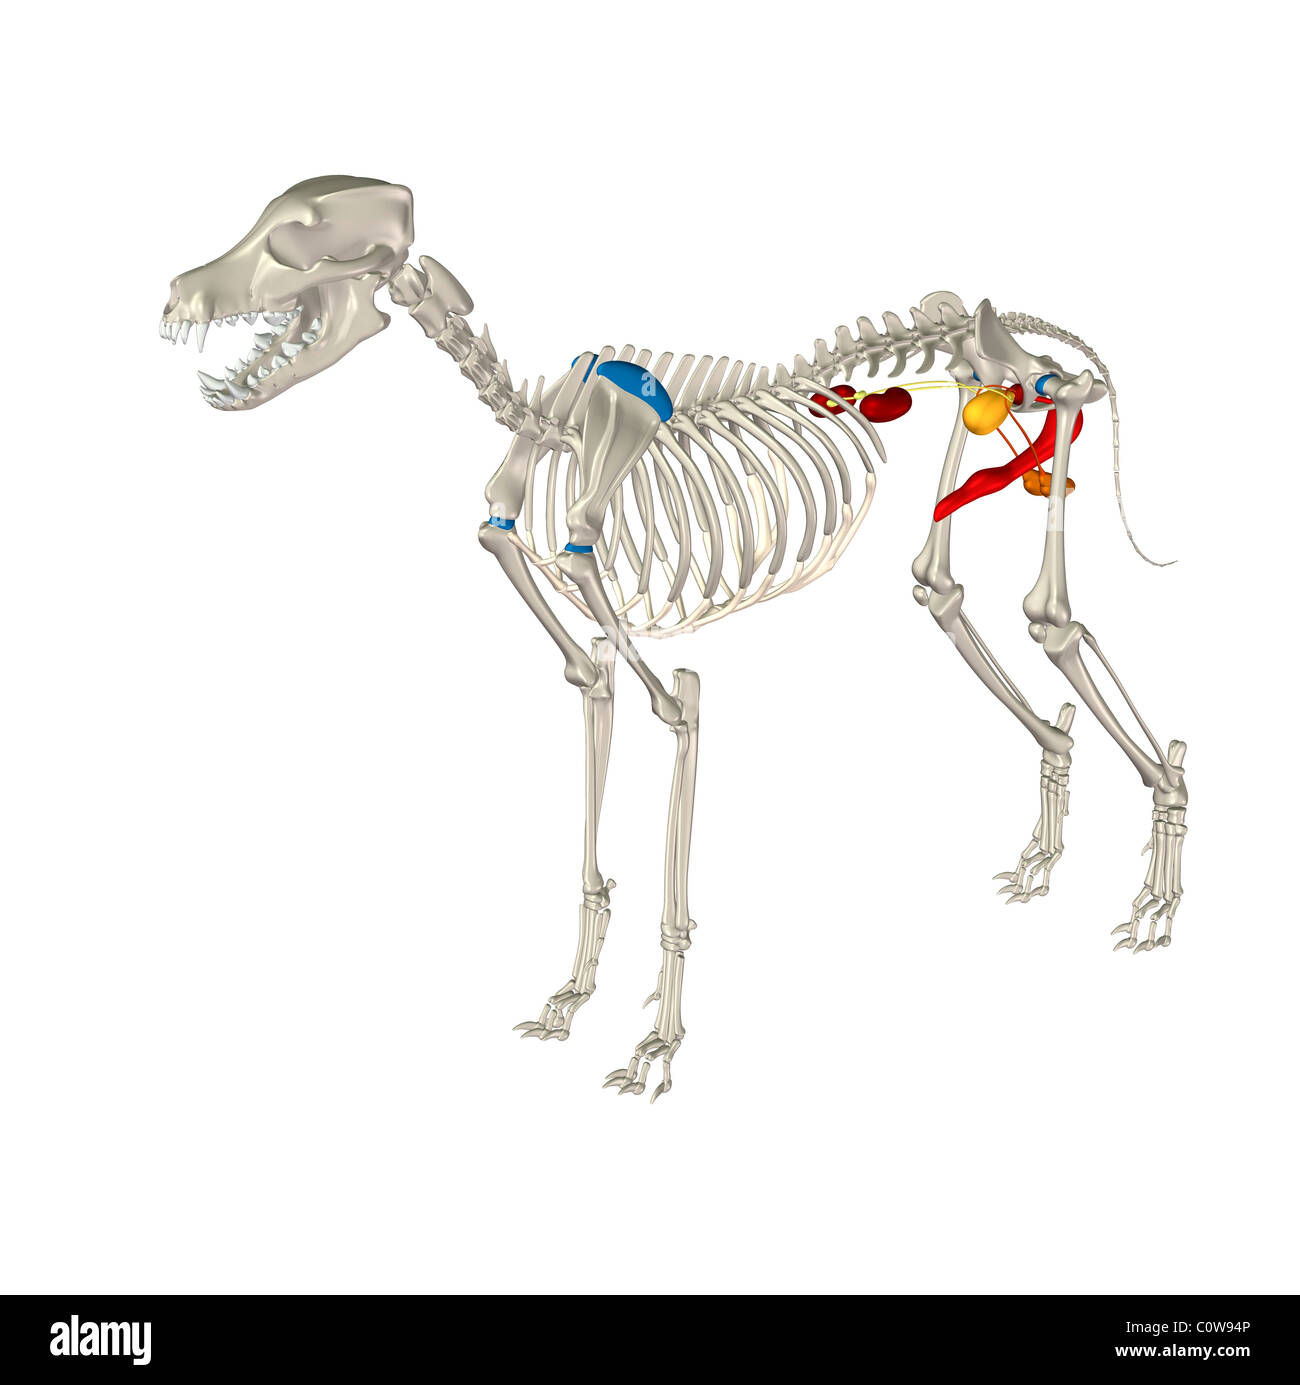 Dog Anatomy Urinary Penis Bladder Kidney Stock Photo 34976726 Alamy